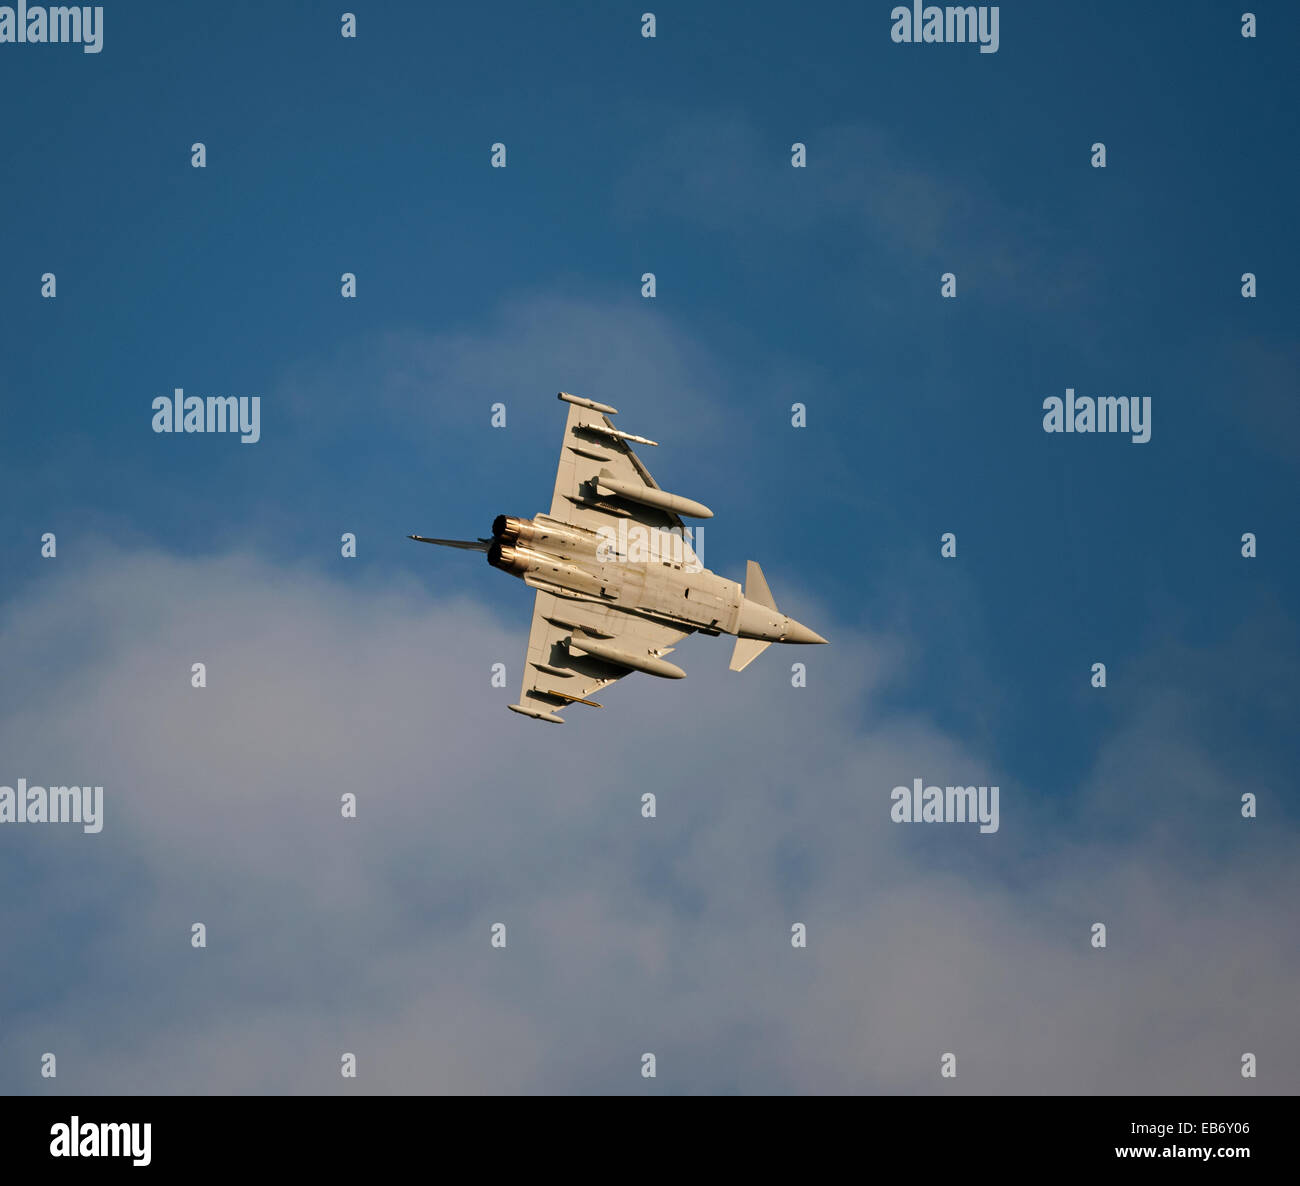 Eurofighter Typhoon ZK316 1 Squadron RAF Lossiemouth, Scotland.  SCO 9194 - Stock Image